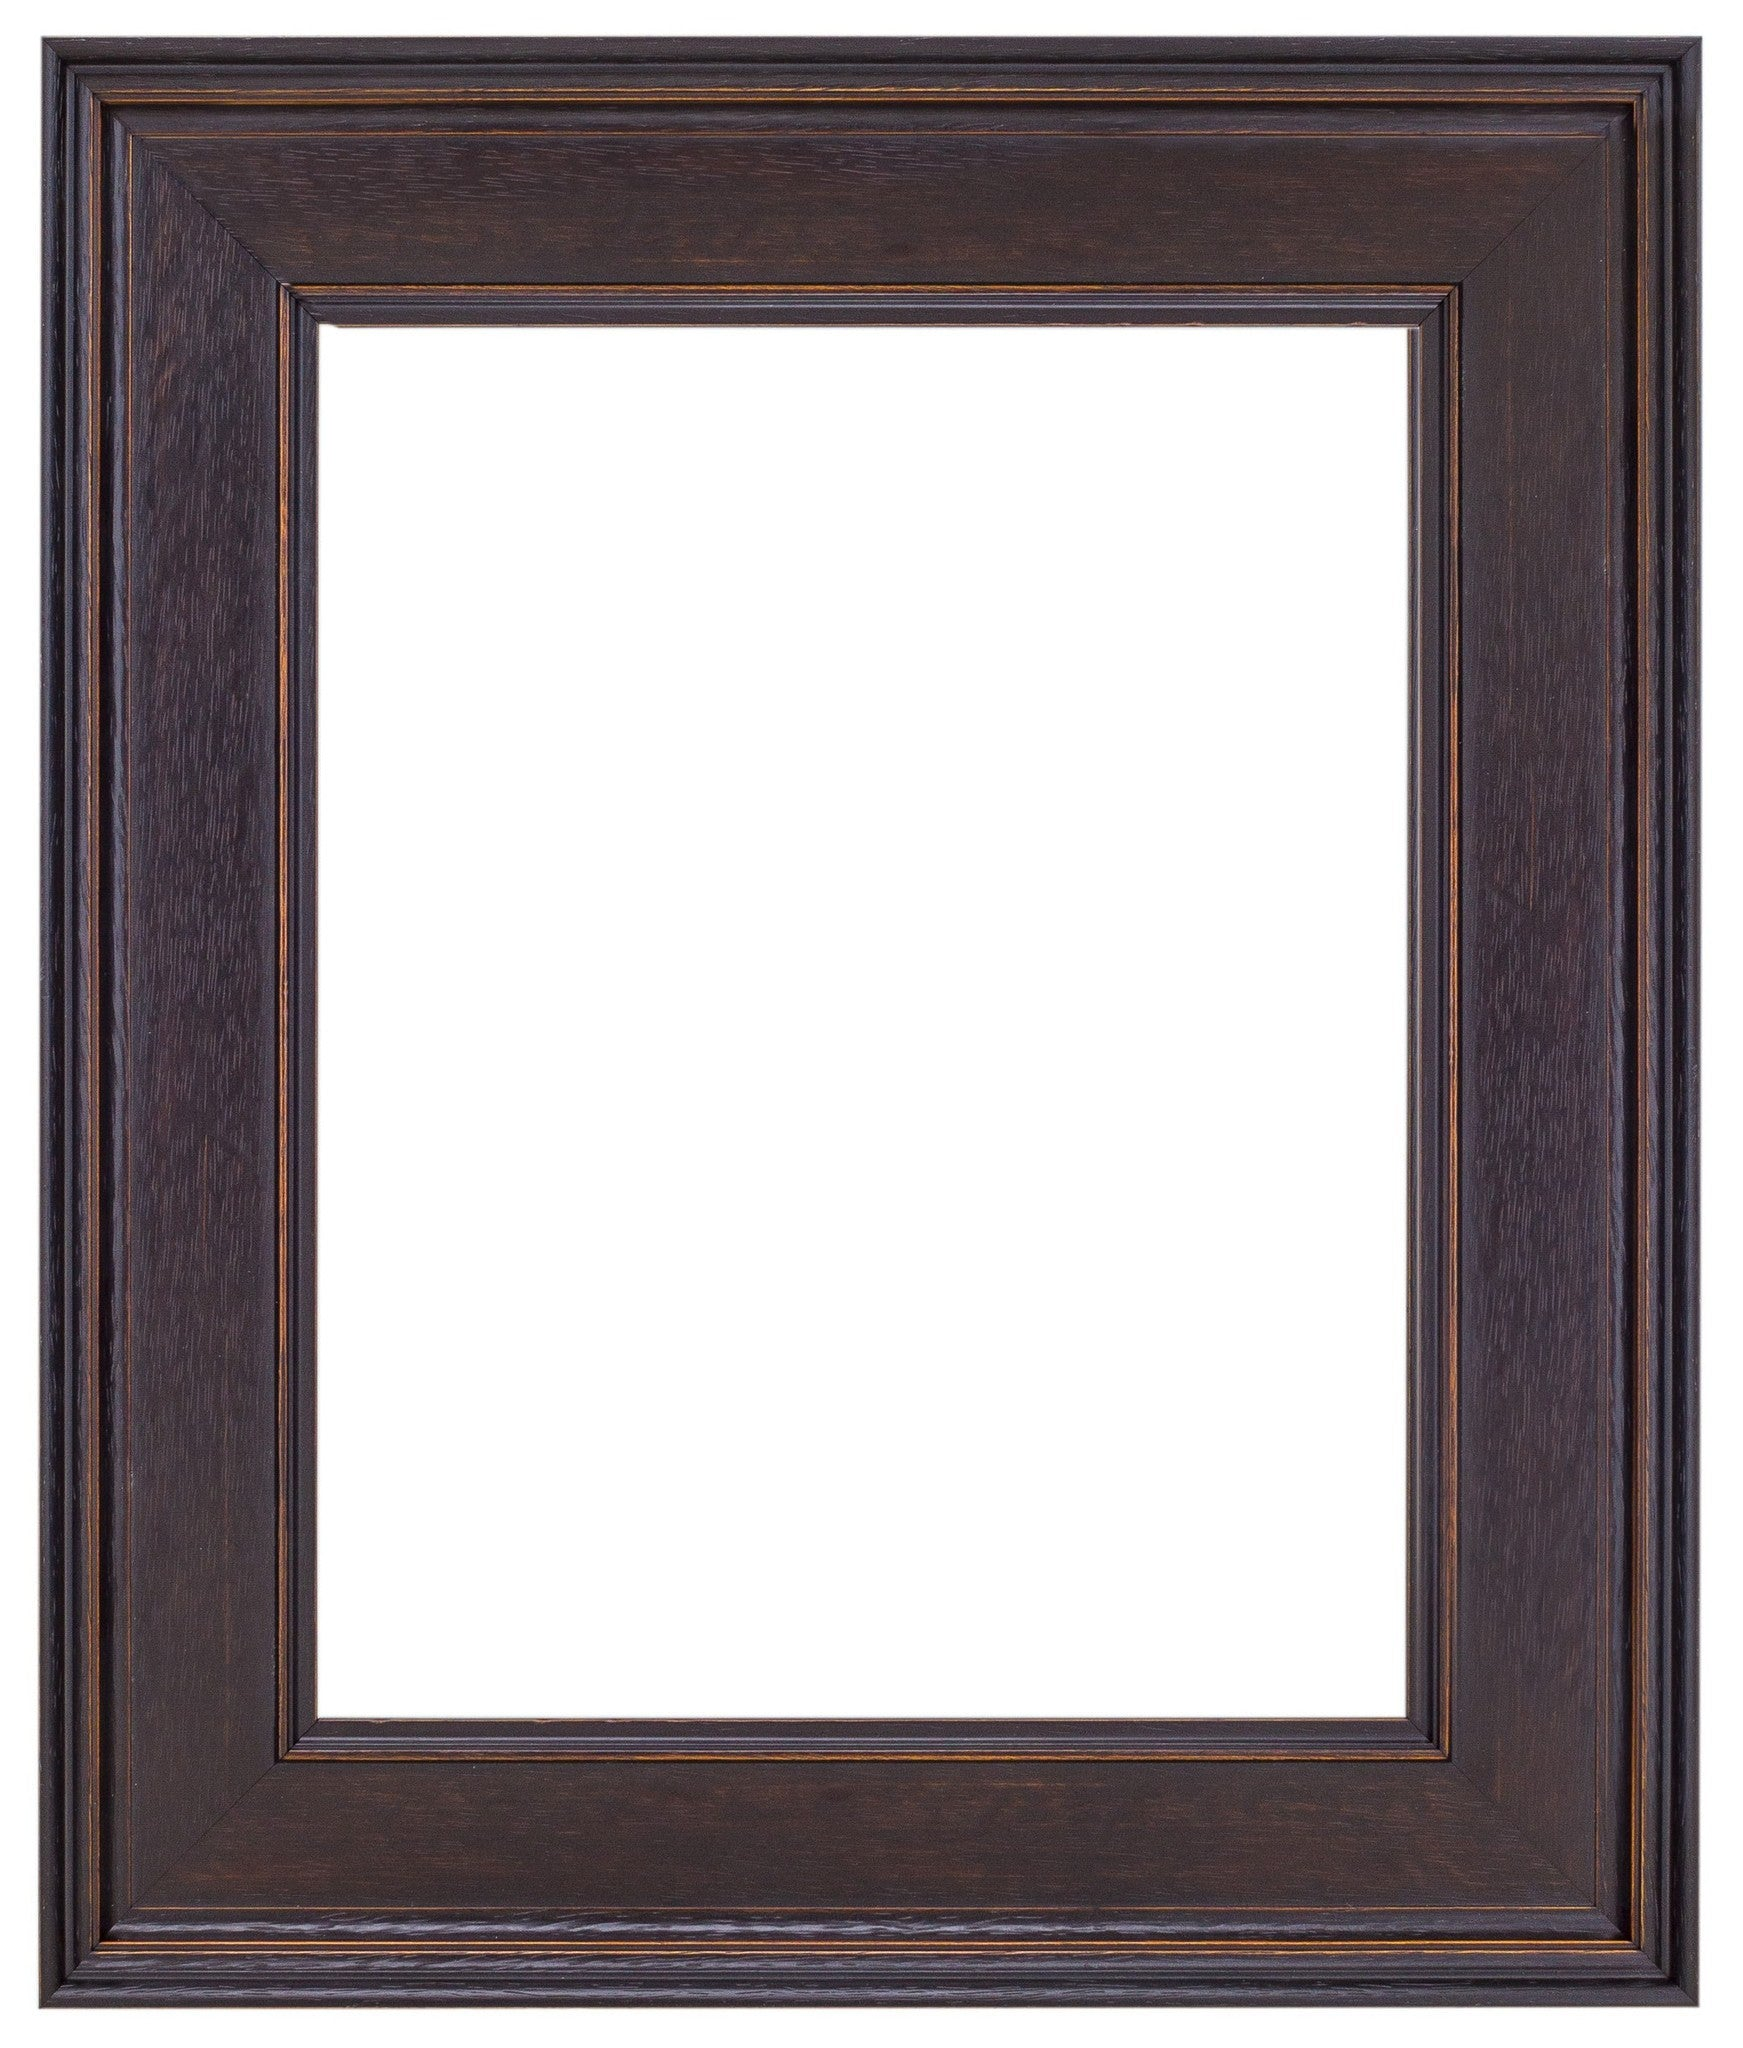 Dark Walnut Stain Wood Frame - Wholesale Frame Company